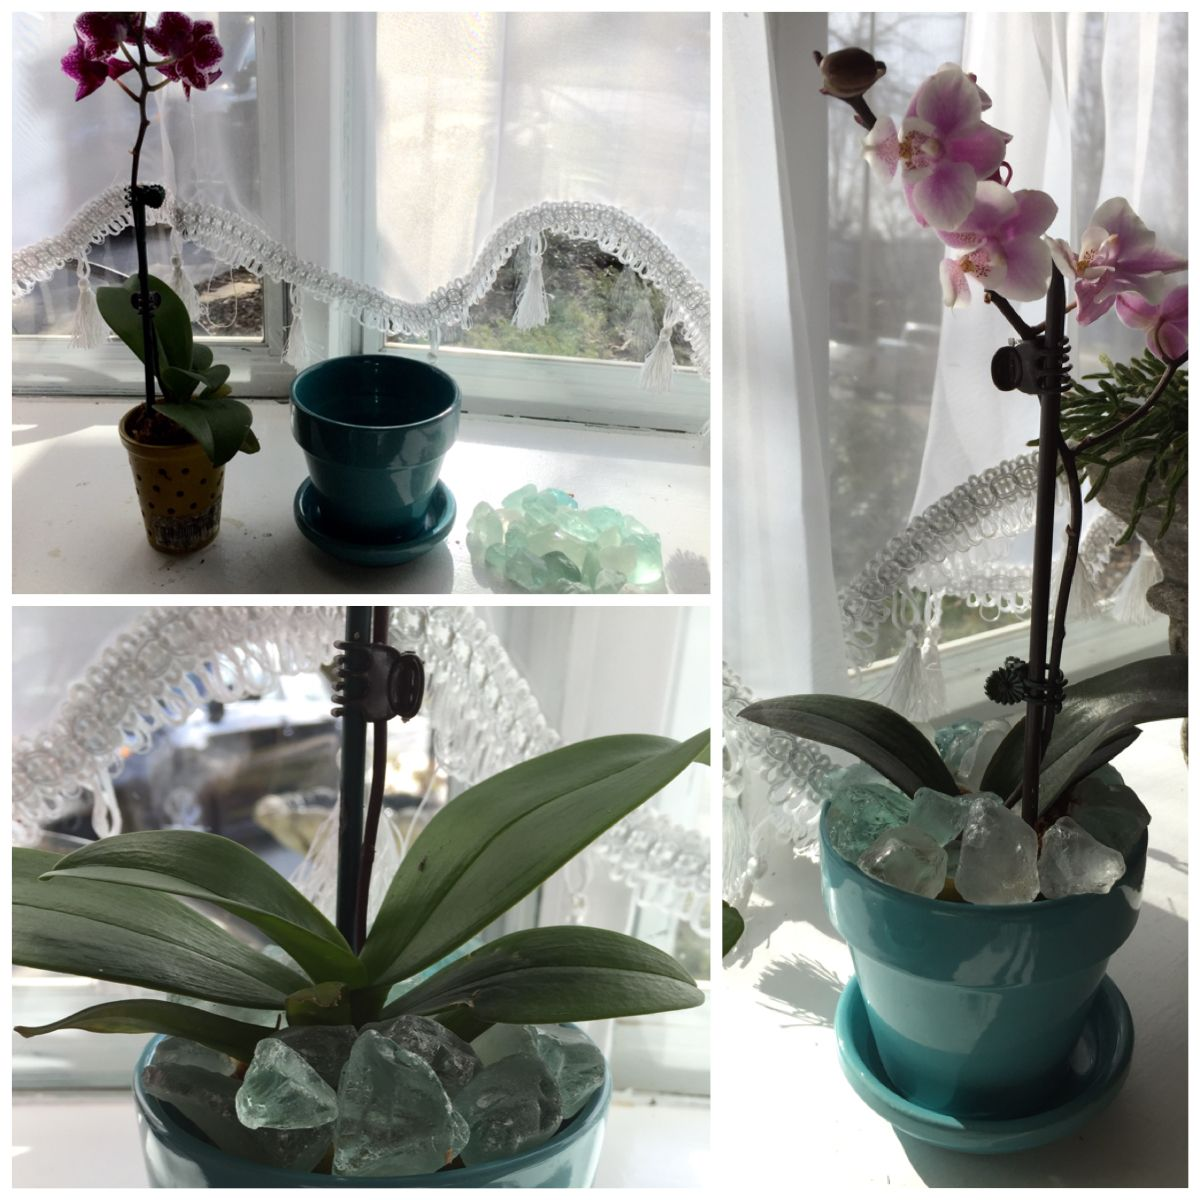 place inside decorative pot and surround with sea glass marbles rocks etc using sea glass makes a great decoration for a frozen